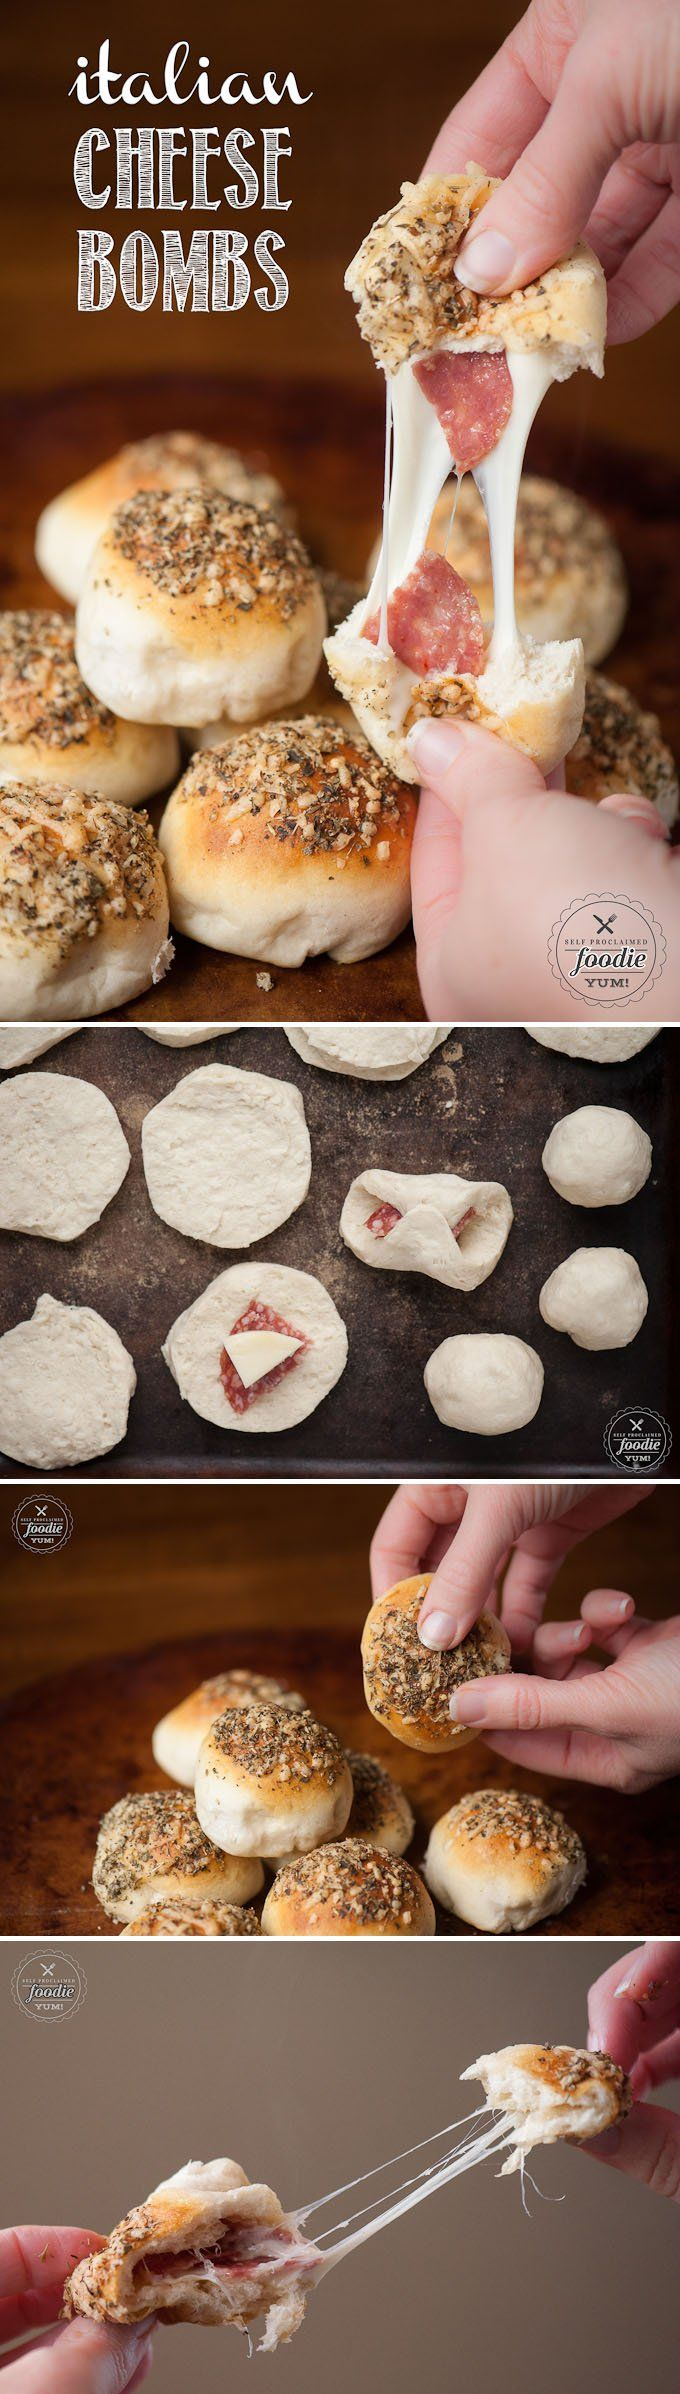 These Italian Cheese Bombs take only minutes to prepare using premade biscuit doug